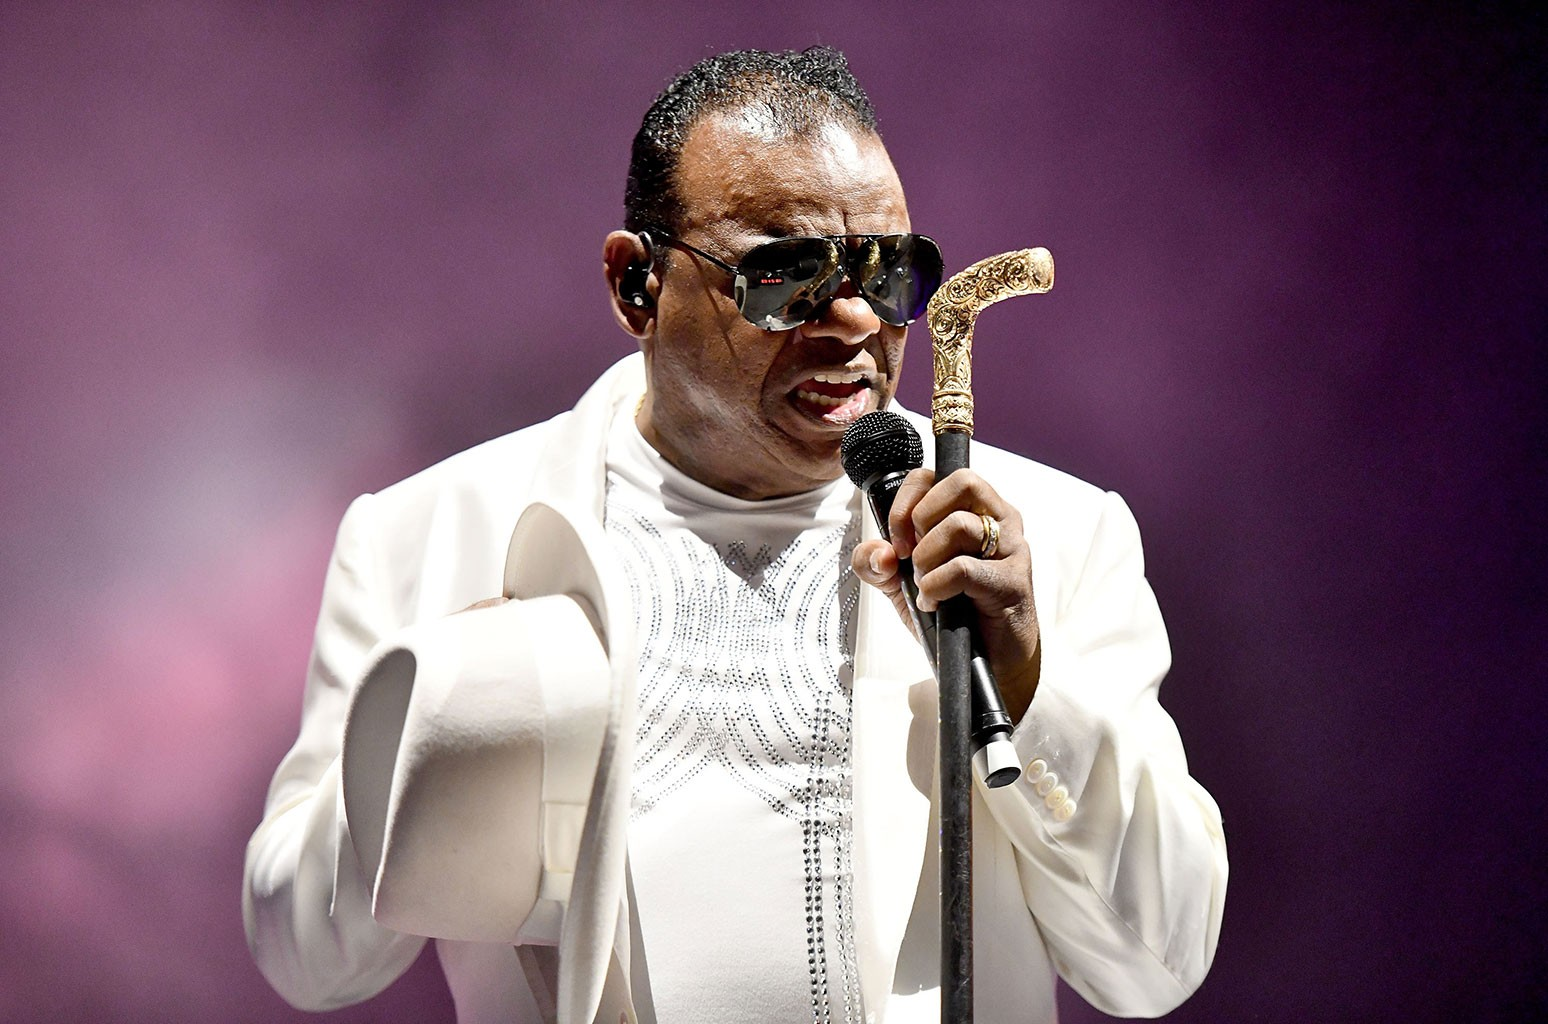 Ronald Isley of The Isley Brothers